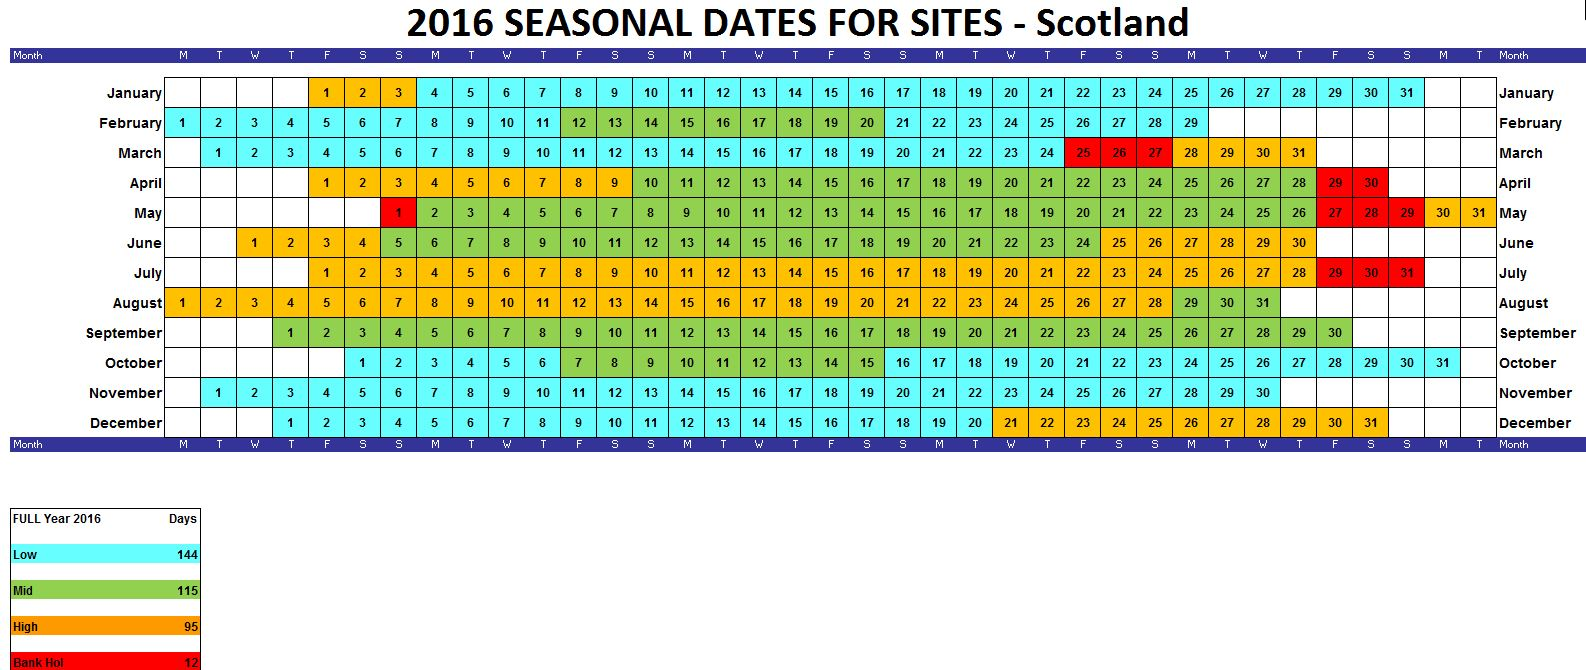 2016 Seasonal Dates Scotland